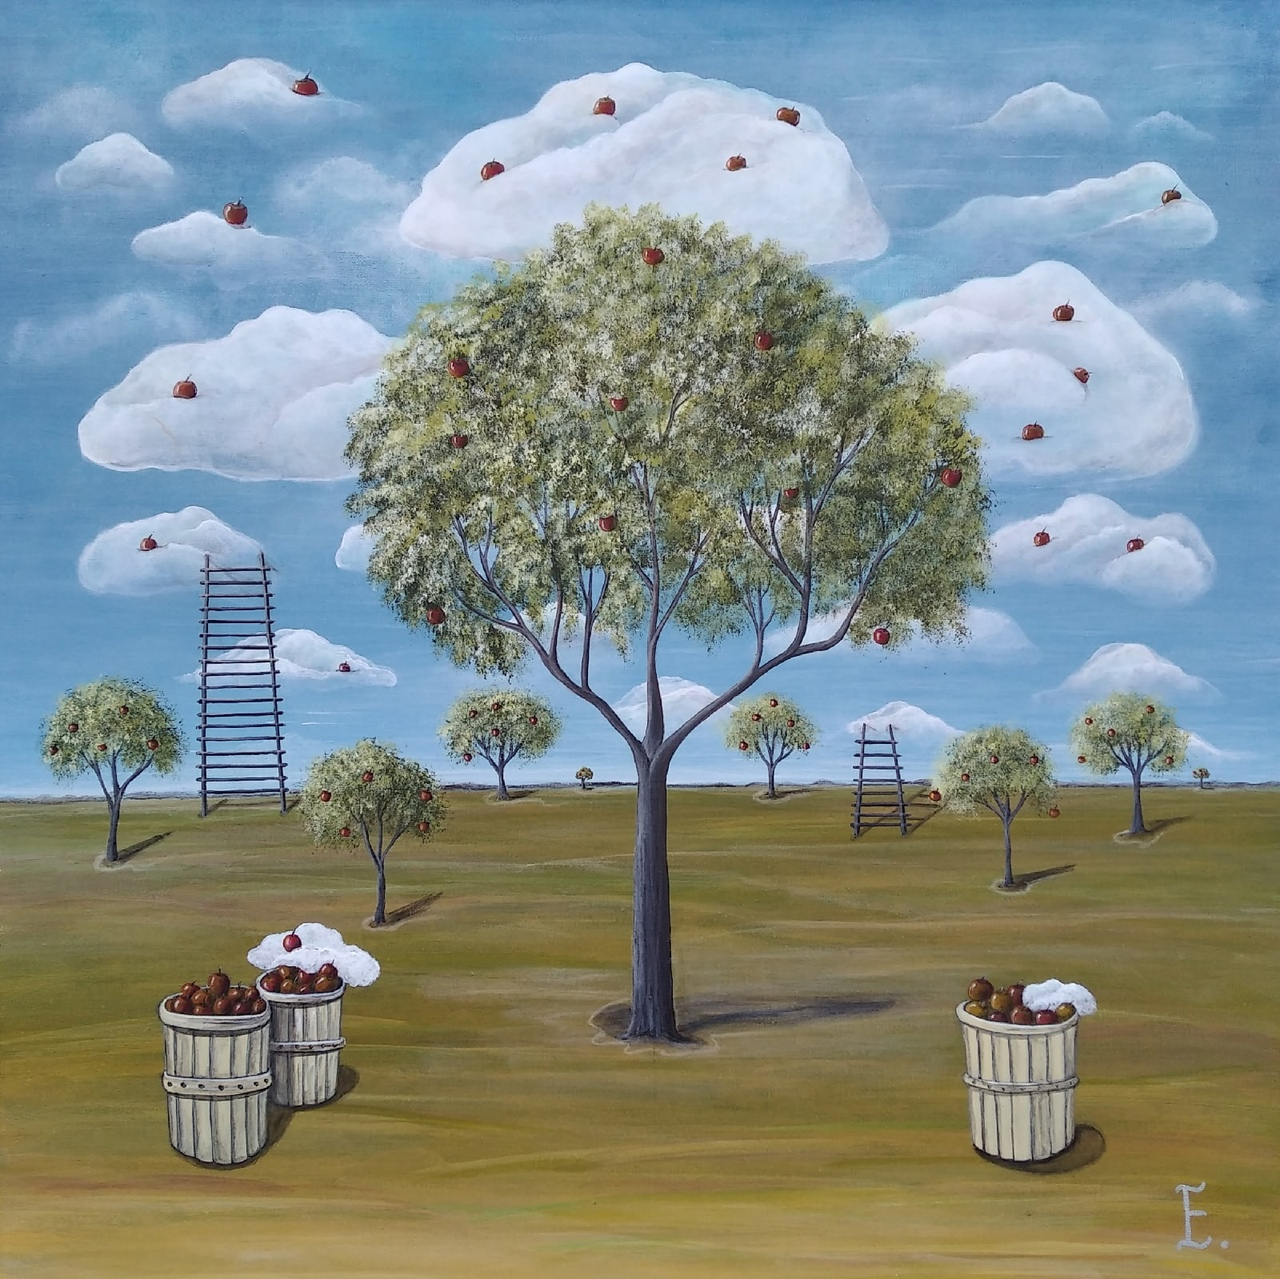 Apples fall into the sky